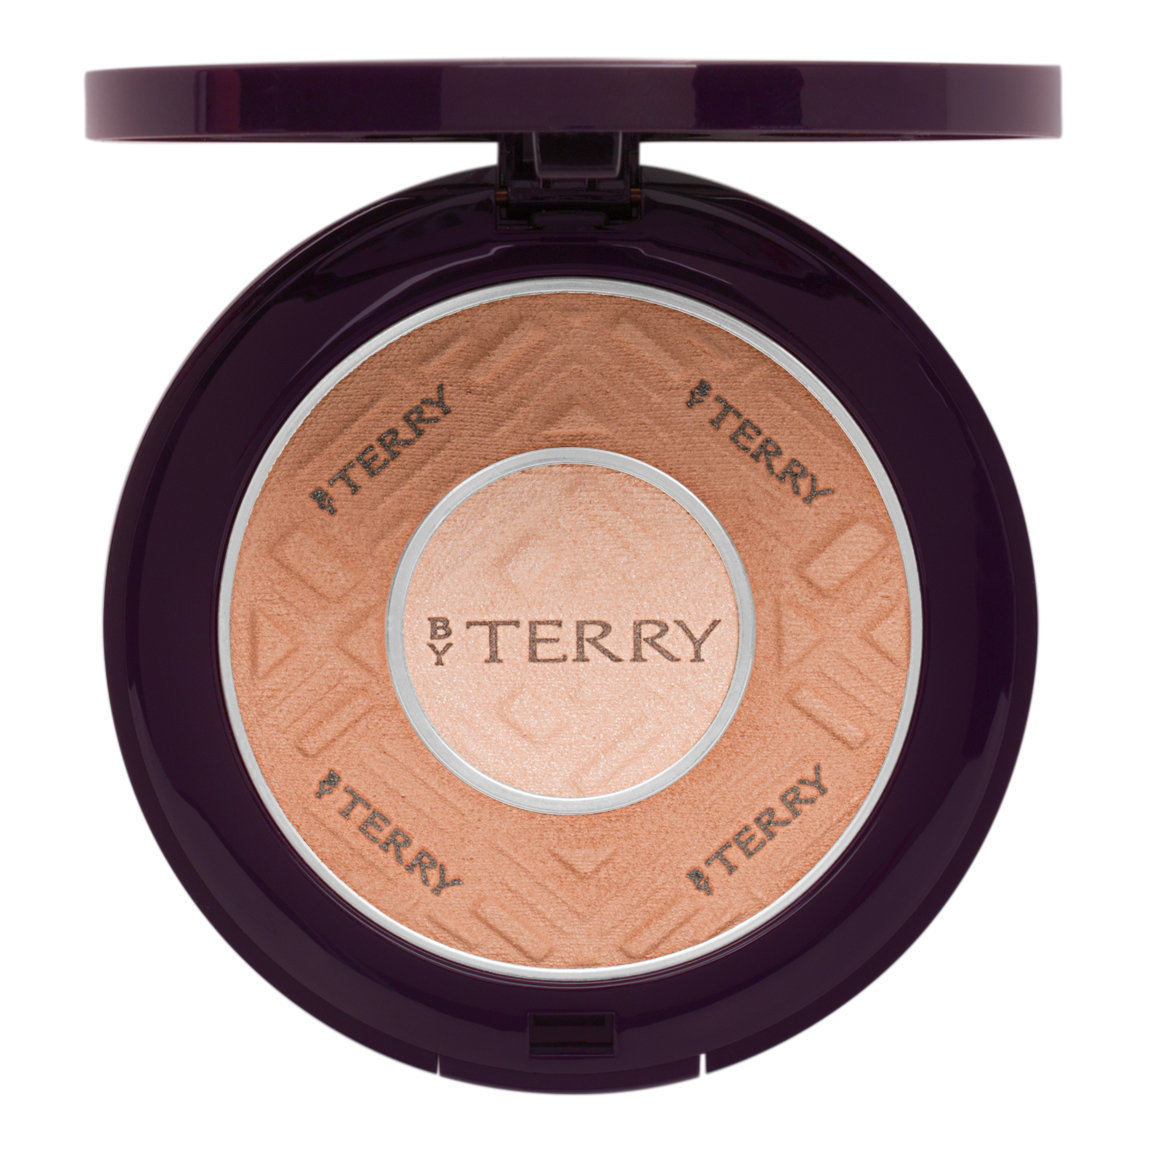 BY TERRY Compact-Expert Dual Powder 4 Beige Nude product smear.